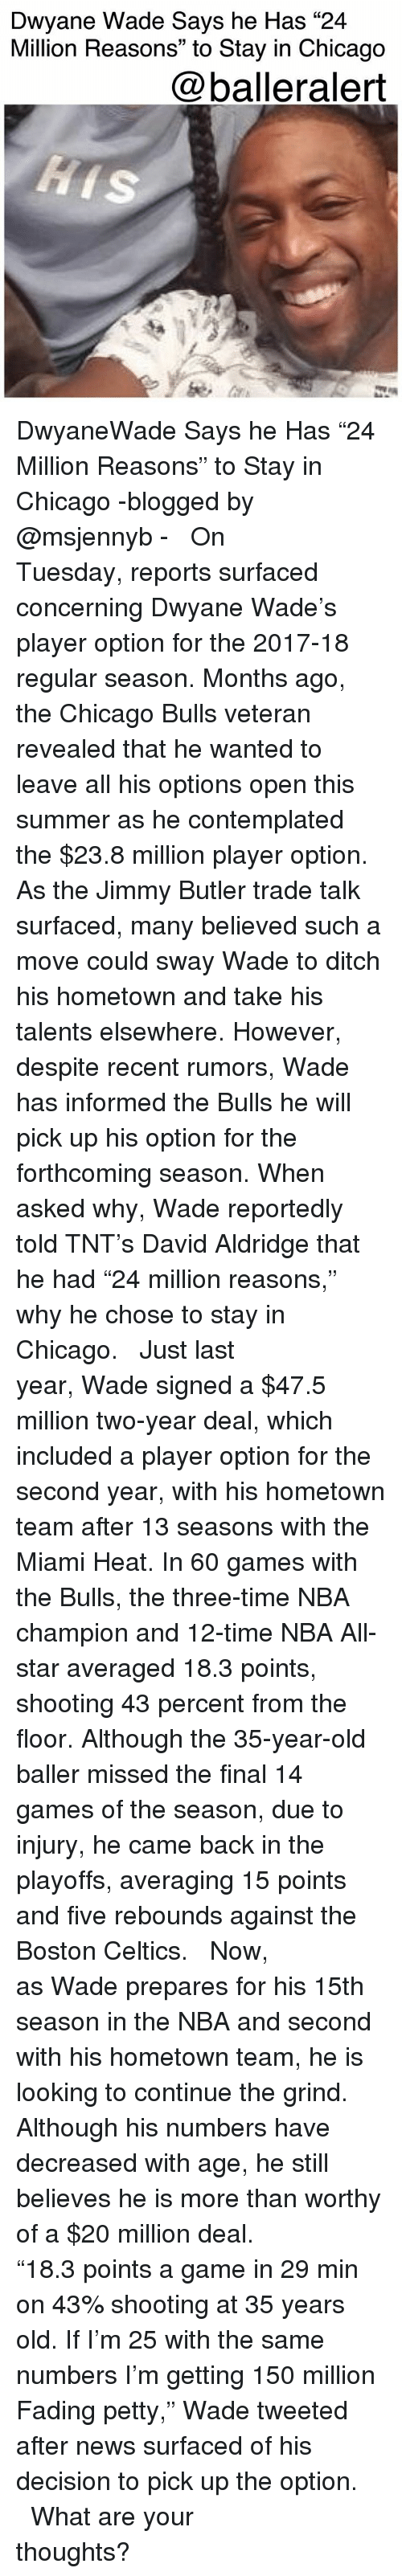 """The Miami Heat: Dwyane Wade Says he Has """"24  Million Reasons"""" to Stay in Chicago  @balleralert DwyaneWade Says he Has """"24 Million Reasons"""" to Stay in Chicago -blogged by @msjennyb - ⠀⠀⠀⠀⠀⠀⠀ ⠀⠀⠀⠀⠀⠀⠀ On Tuesday, reports surfaced concerning Dwyane Wade's player option for the 2017-18 regular season. Months ago, the Chicago Bulls veteran revealed that he wanted to leave all his options open this summer as he contemplated the $23.8 million player option. As the Jimmy Butler trade talk surfaced, many believed such a move could sway Wade to ditch his hometown and take his talents elsewhere. However, despite recent rumors, Wade has informed the Bulls he will pick up his option for the forthcoming season. When asked why, Wade reportedly told TNT's David Aldridge that he had """"24 million reasons,"""" why he chose to stay in Chicago. ⠀⠀⠀⠀⠀⠀⠀ ⠀⠀⠀⠀⠀⠀⠀ Just last year, Wade signed a $47.5 million two-year deal, which included a player option for the second year, with his hometown team after 13 seasons with the Miami Heat. In 60 games with the Bulls, the three-time NBA champion and 12-time NBA All-star averaged 18.3 points, shooting 43 percent from the floor. Although the 35-year-old baller missed the final 14 games of the season, due to injury, he came back in the playoffs, averaging 15 points and five rebounds against the Boston Celtics. ⠀⠀⠀⠀⠀⠀⠀ ⠀⠀⠀⠀⠀⠀⠀ Now, as Wade prepares for his 15th season in the NBA and second with his hometown team, he is looking to continue the grind. Although his numbers have decreased with age, he still believes he is more than worthy of a $20 million deal. ⠀⠀⠀⠀⠀⠀⠀ ⠀⠀⠀⠀⠀⠀⠀ """"18.3 points a game in 29 min on 43% shooting at 35 years old. If I'm 25 with the same numbers I'm getting 150 million Fading petty,"""" Wade tweeted after news surfaced of his decision to pick up the option. ⠀⠀⠀⠀⠀⠀⠀ ⠀⠀⠀⠀⠀⠀⠀ What are your thoughts?"""